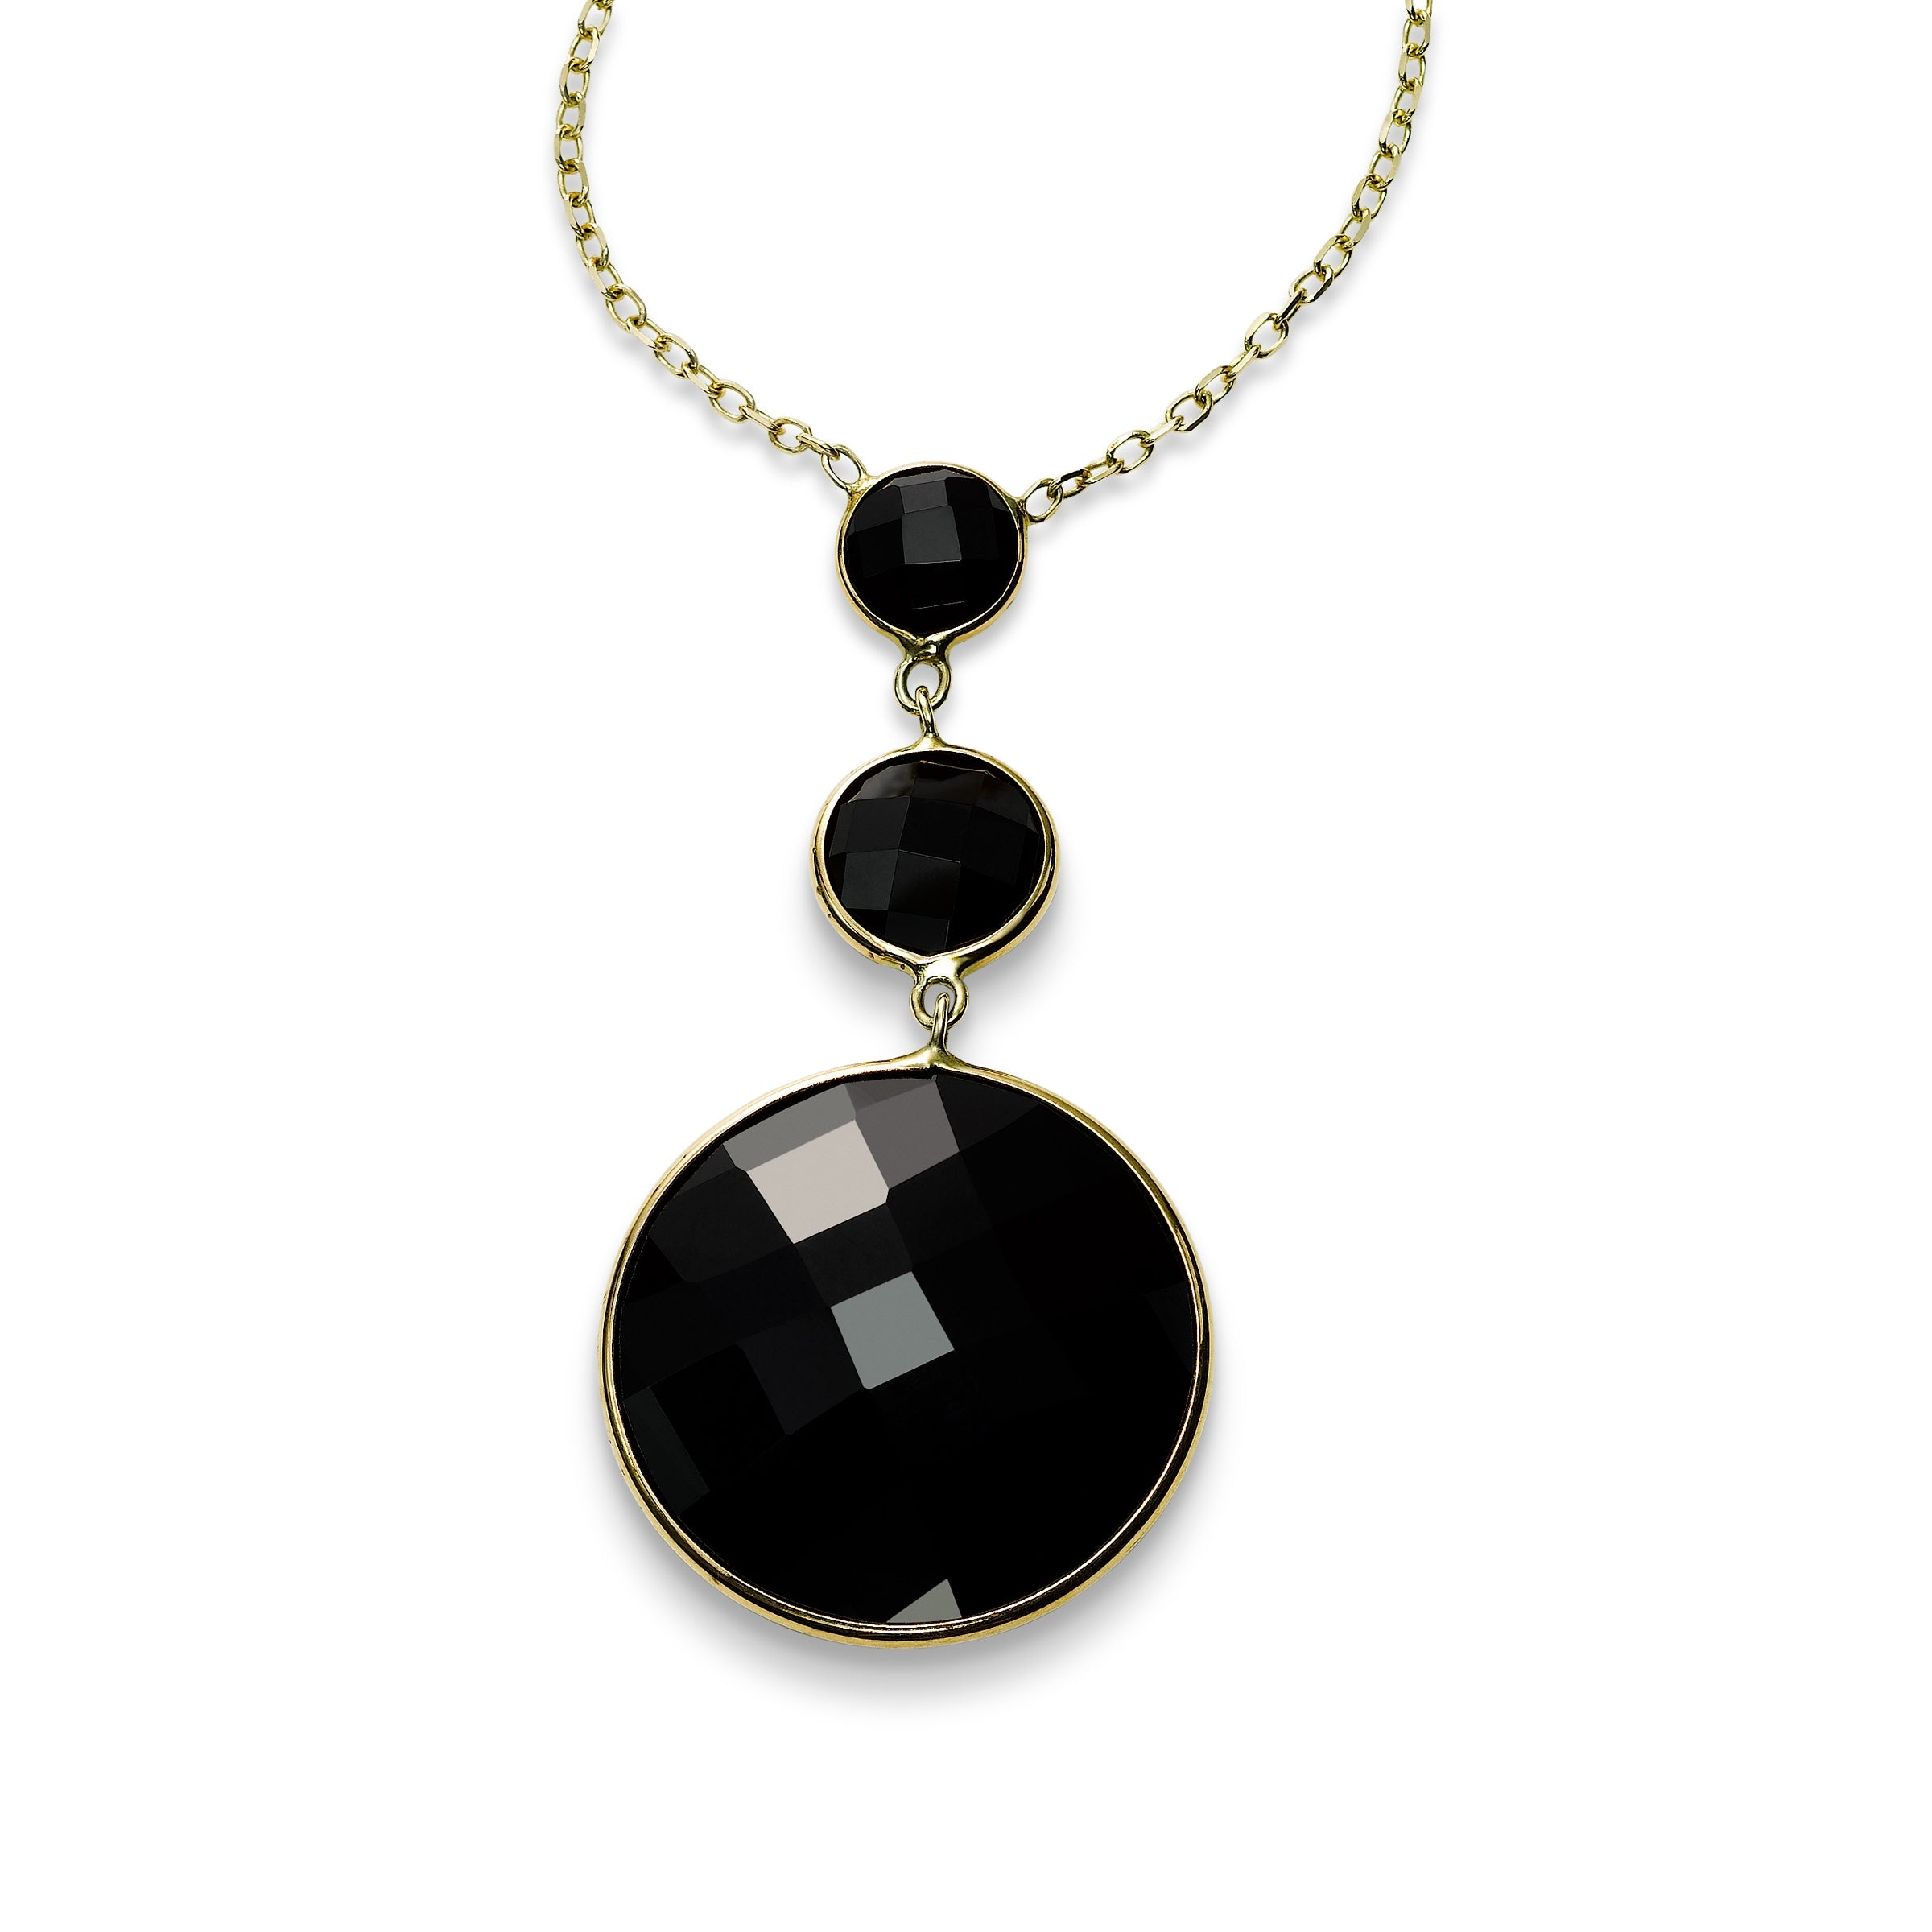 Graduated Black Onyx Drop Necklace, 14K Yellow Gold